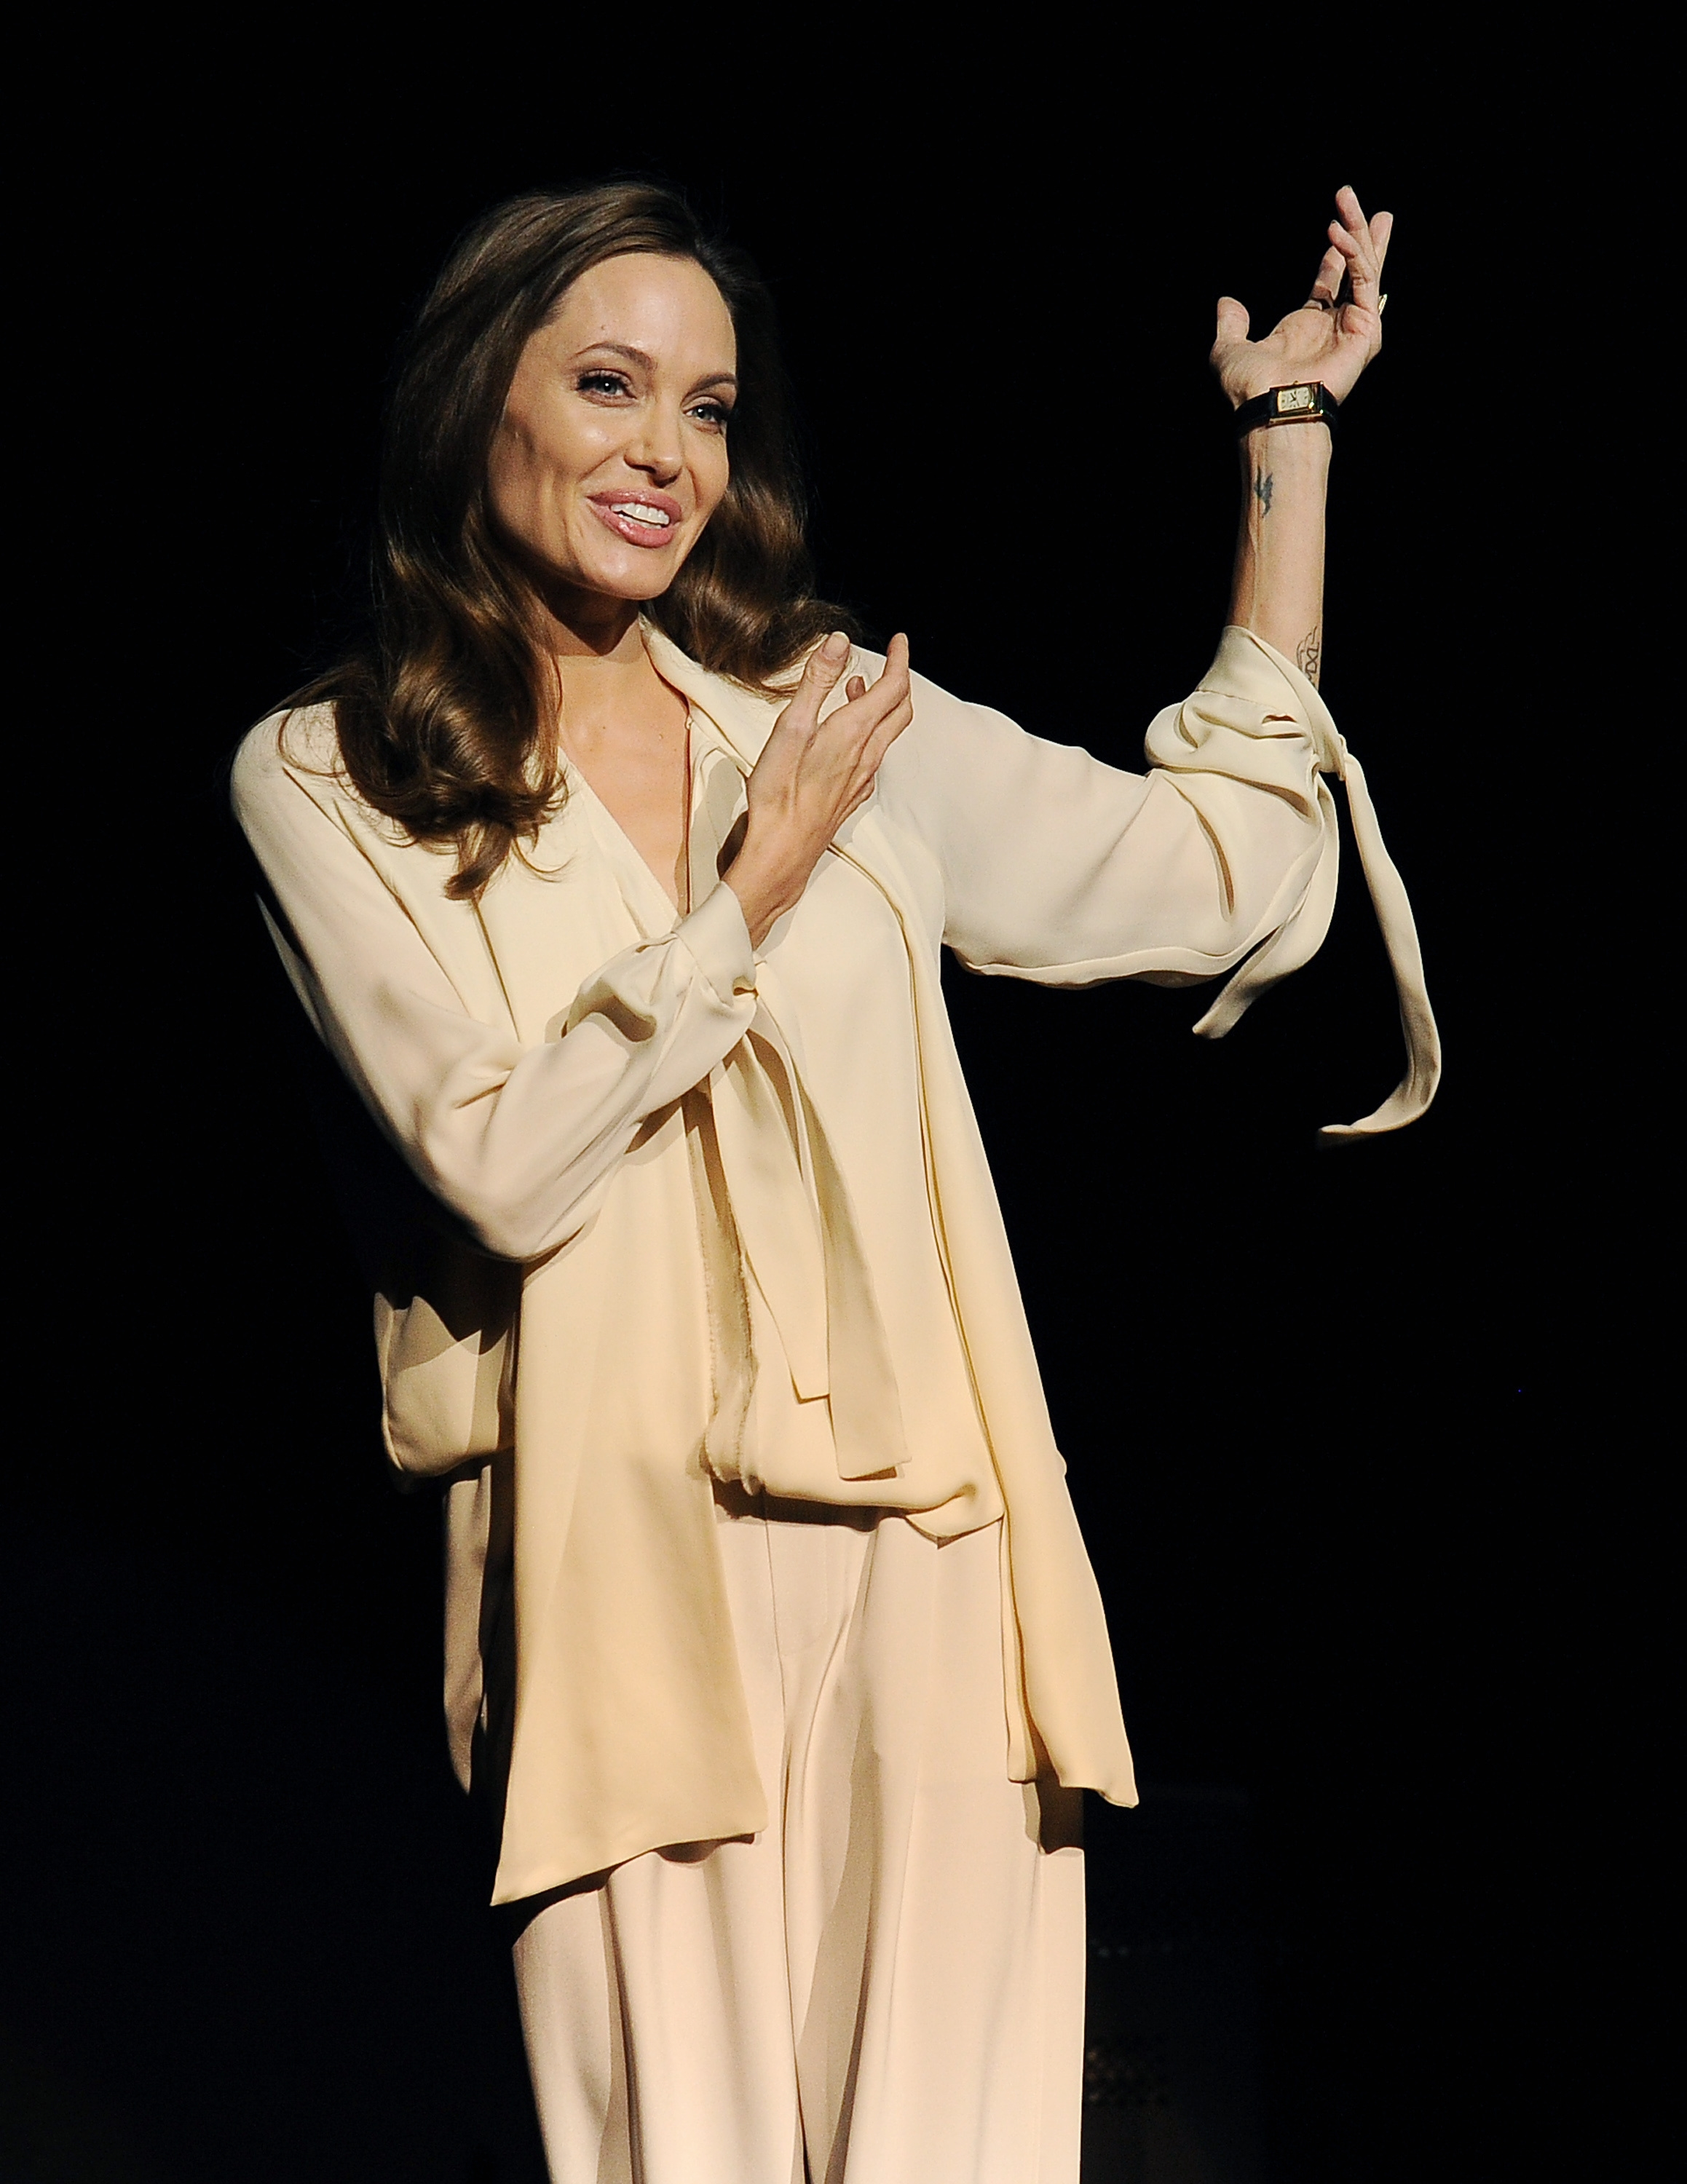 """Unexpected guest: Angelina Jolie made a surprise appearance at the CinemaCon convention in Las Vegas Tuesday to introduce a trailer for """"Unbroken,"""" a movie she directed."""